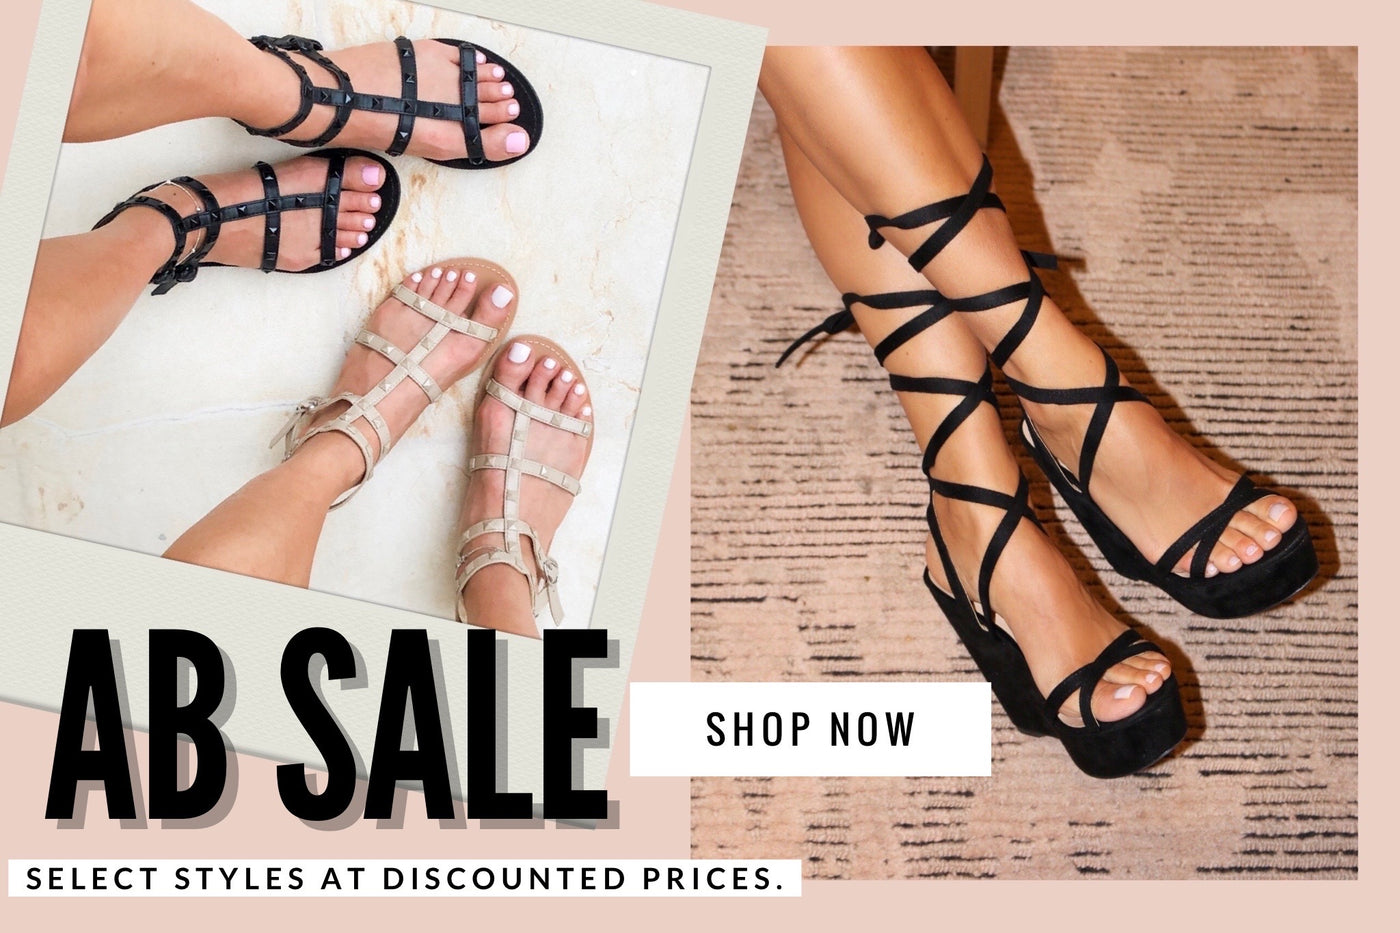 Alexandria Brandao Shoe Sale - select styles at discounted prices